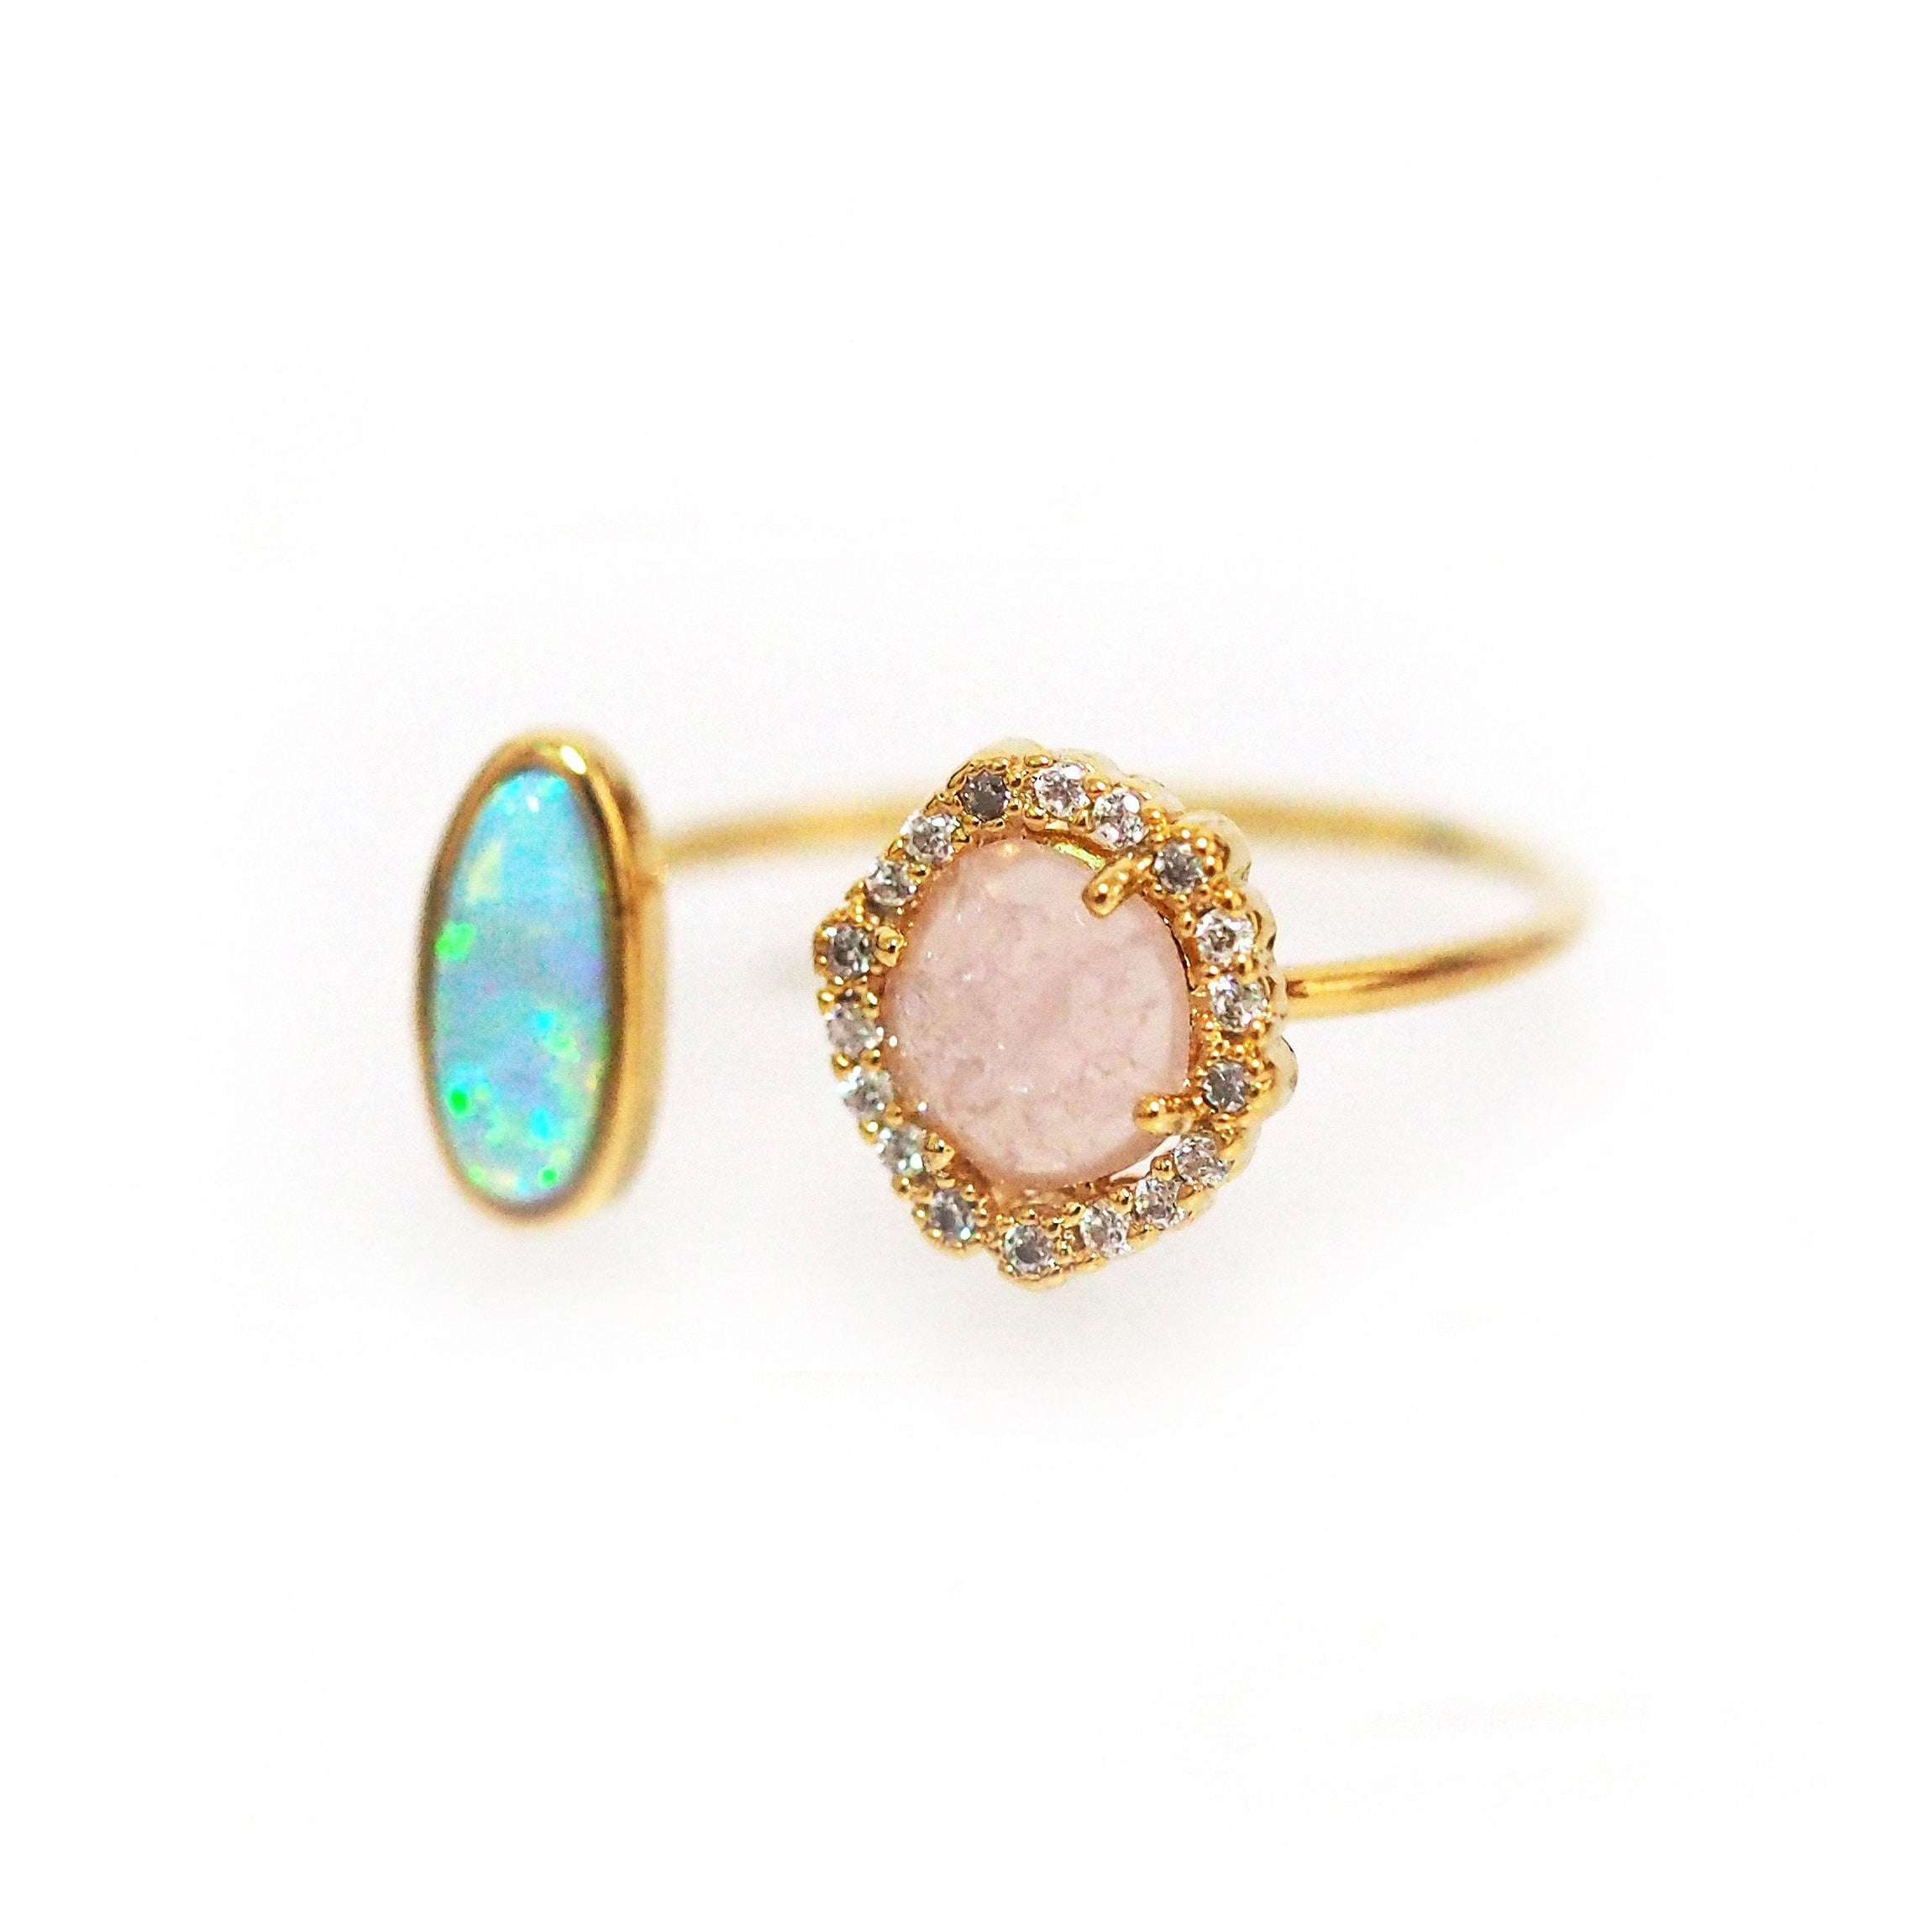 Colored Glass and CZ Ring, Gold Tone, by Tai Design